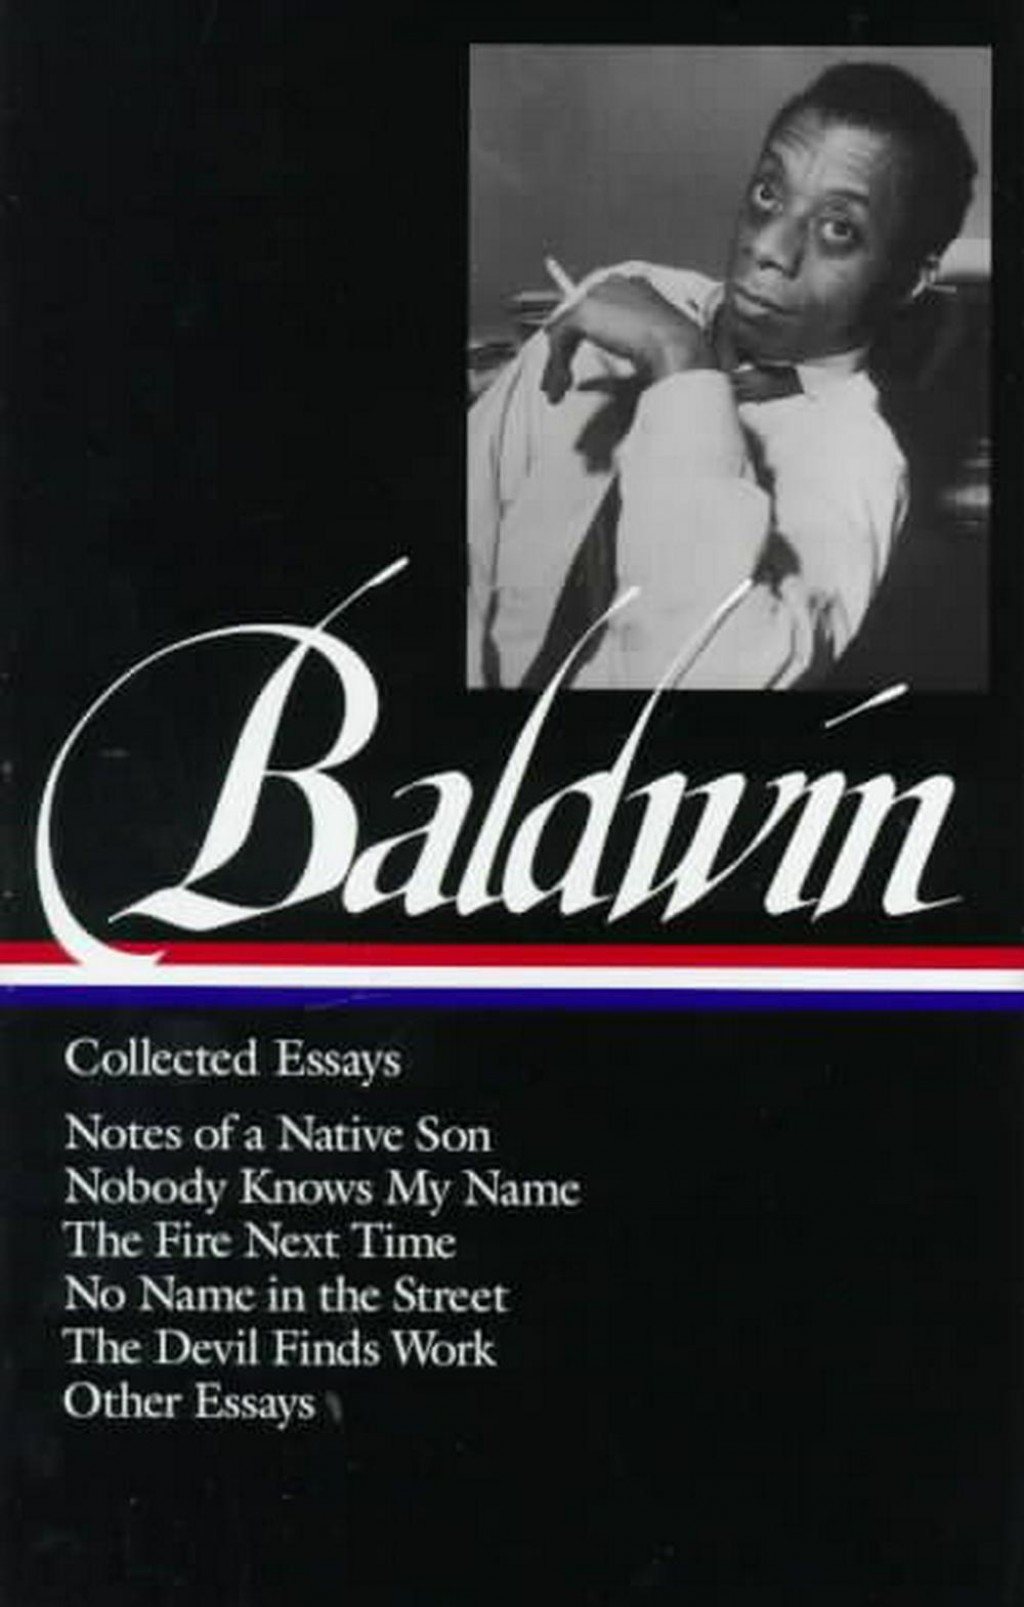 007 James Baldwin Collected Essays 9781883011529r5c3810cfda494 Essay Wondrous Table Of Contents Ebook Google Books Large